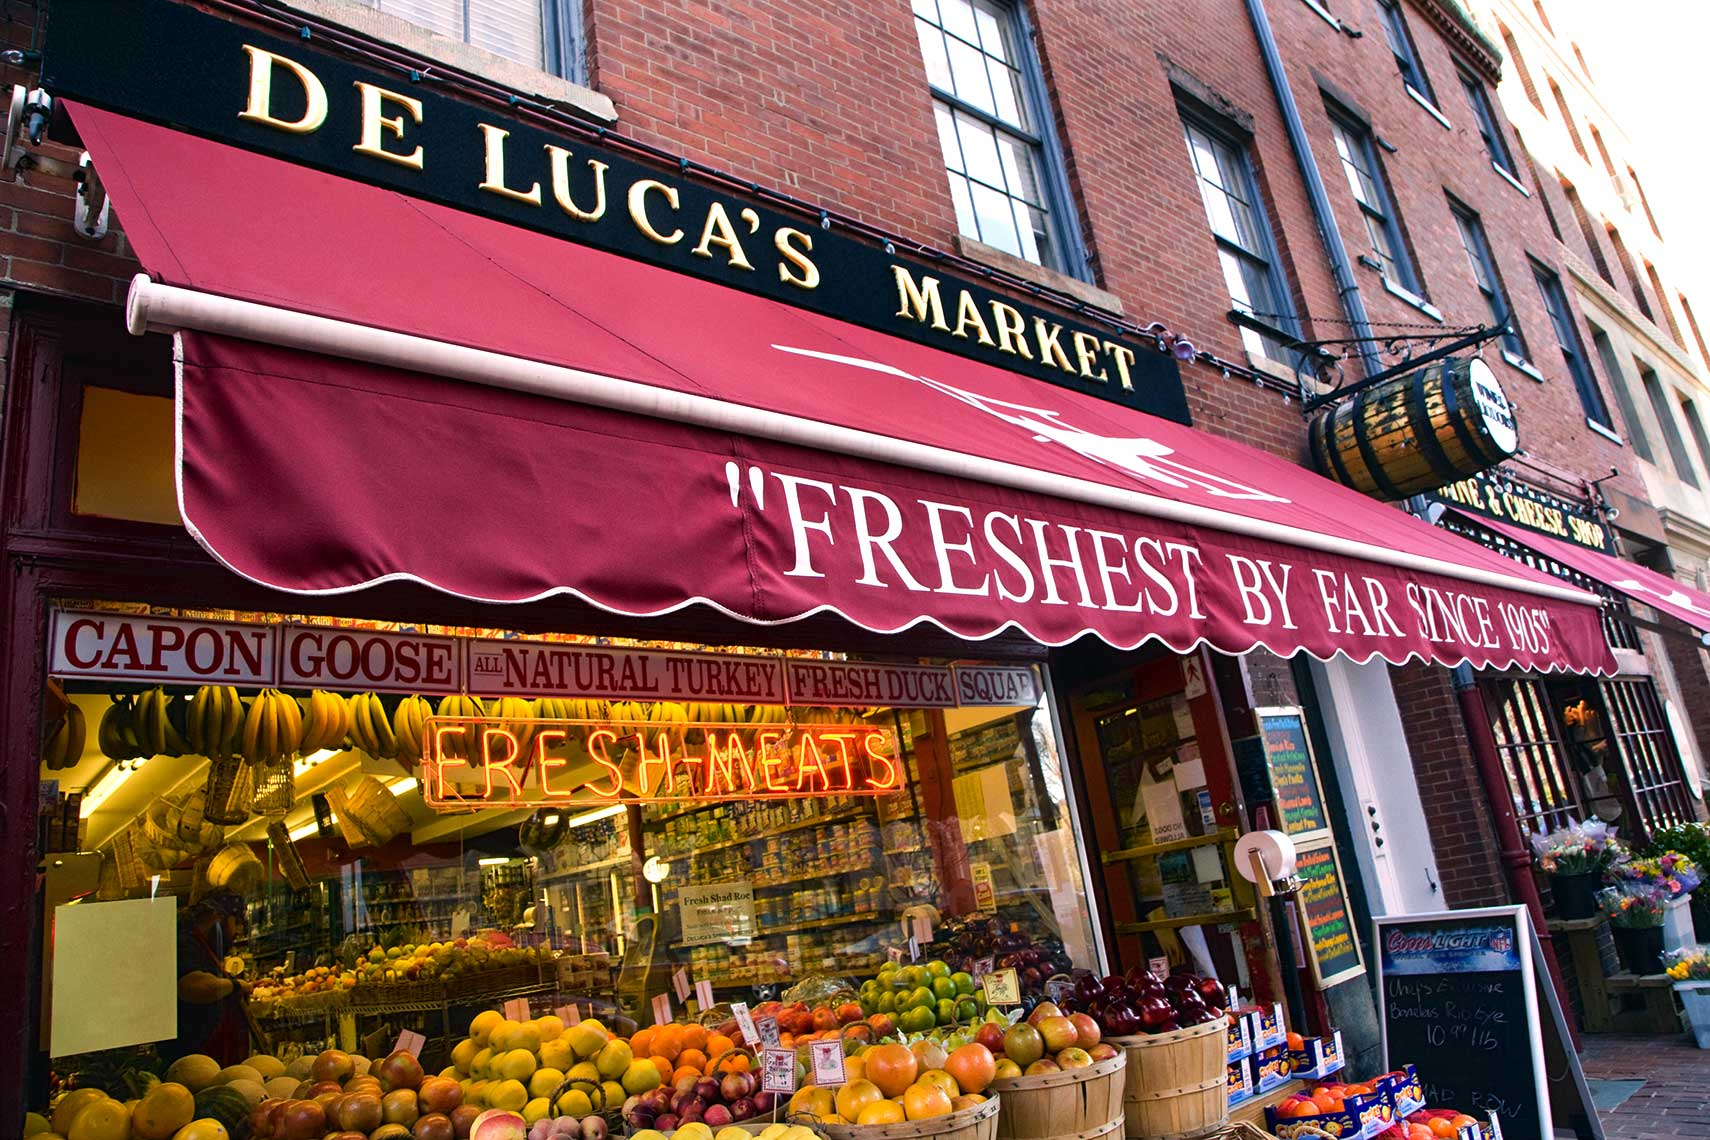 De Lucas Market on Charles St. Boston